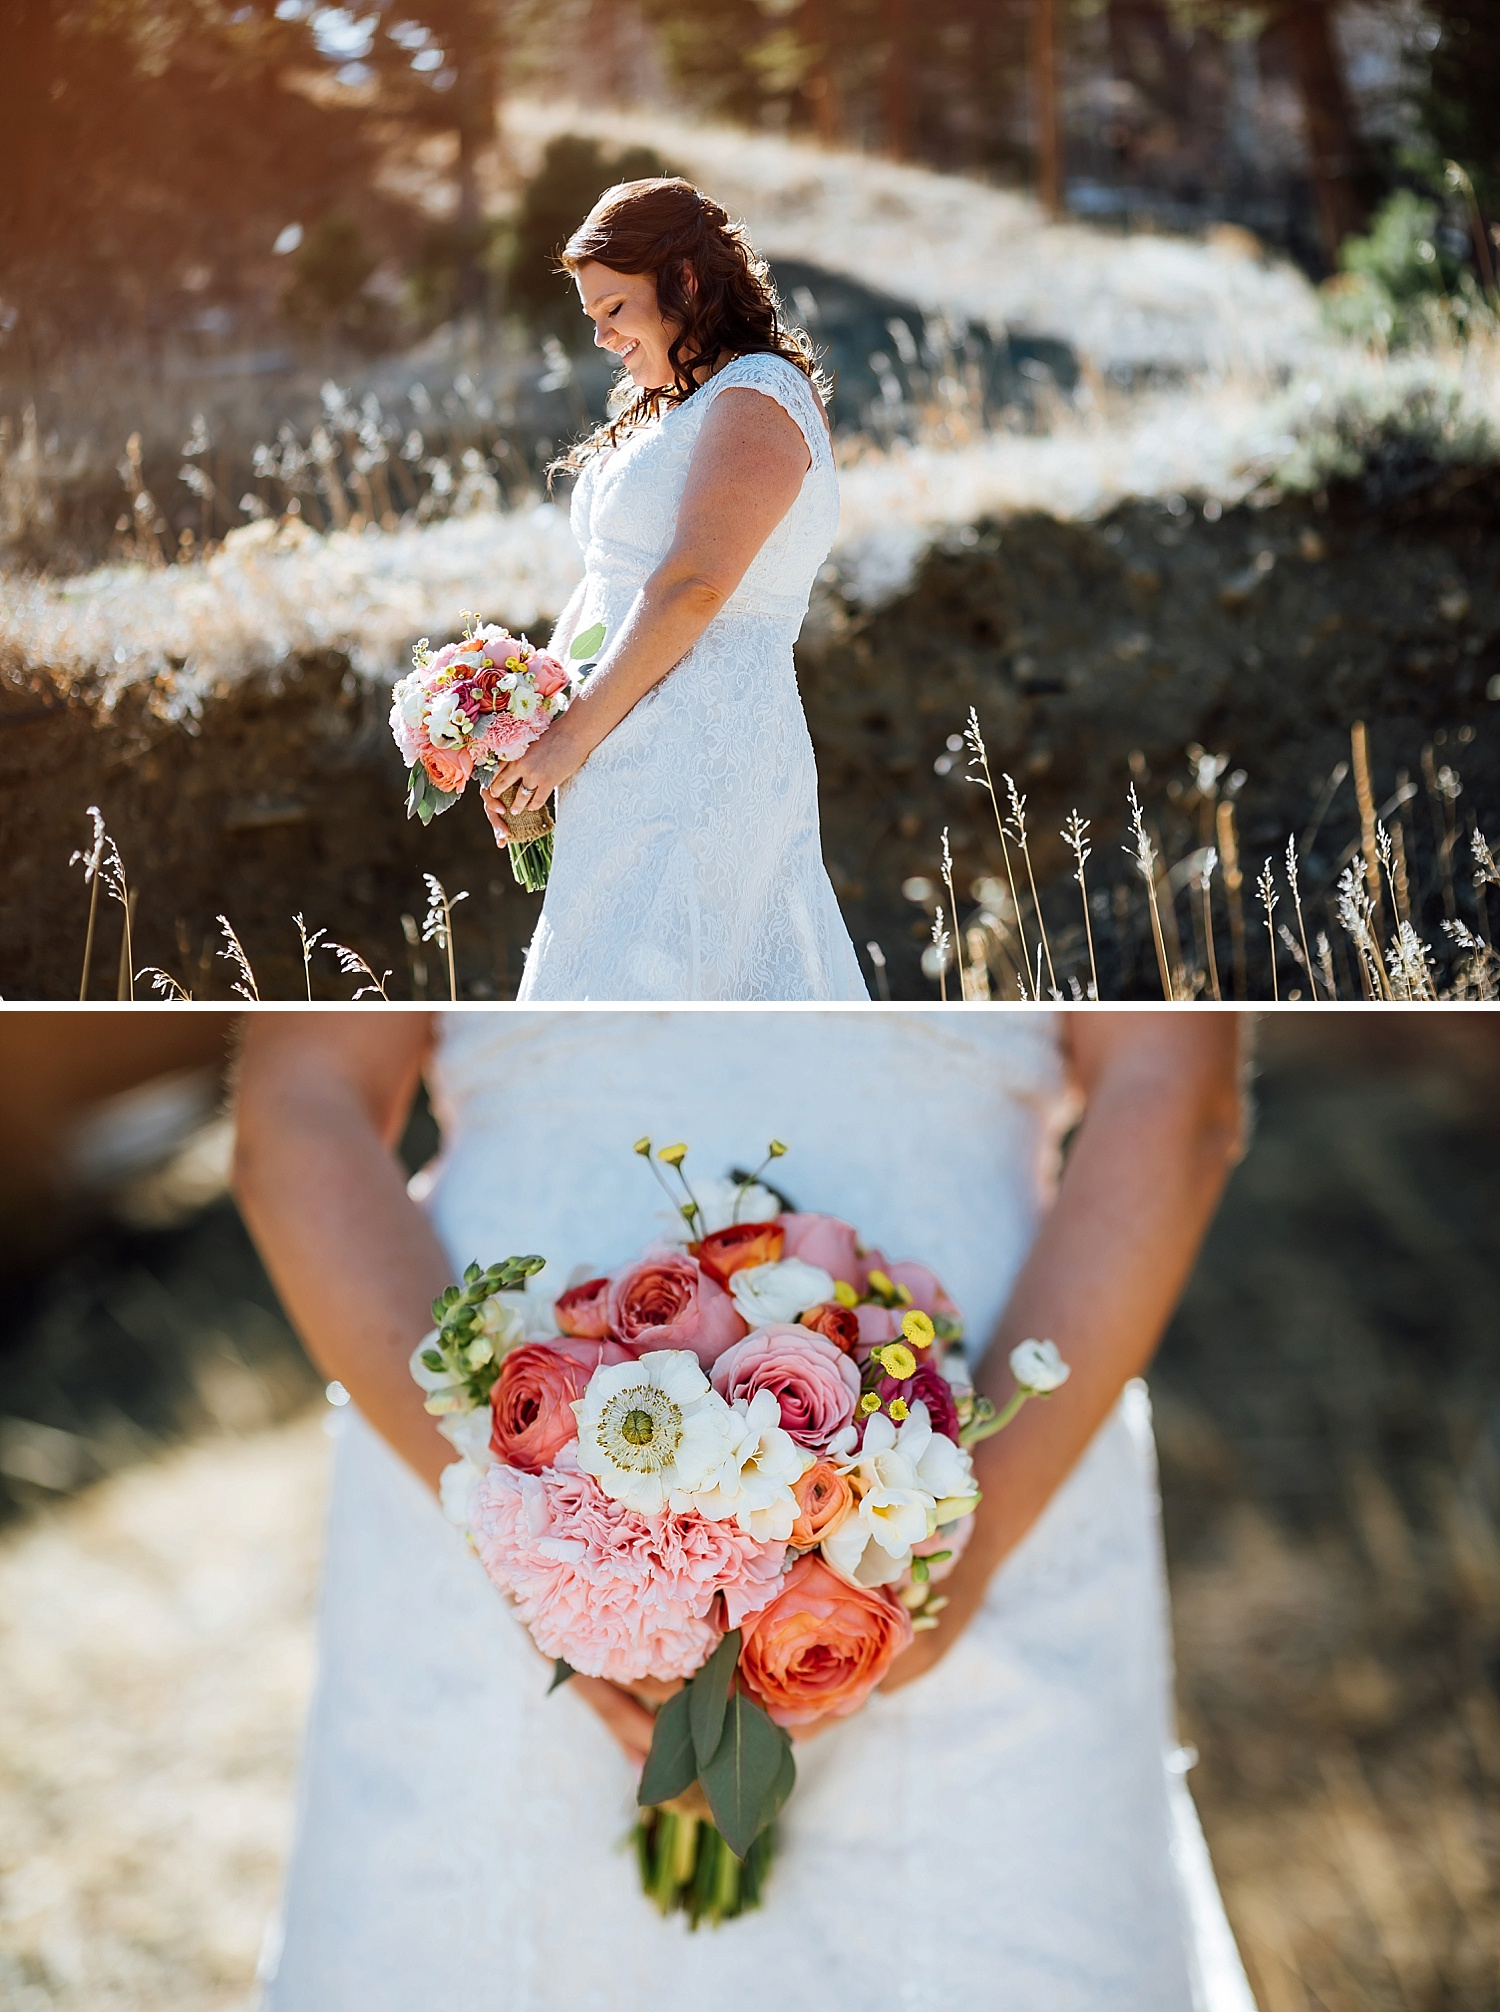 This bouquet with shades of coral, pink, orange, white and yellow is beautiful! Paired with the lace wedding dress is perfection! I love the how the bright colors stand out against the white. Beautiful bridal photos.Photo by Maddie Mae Photography